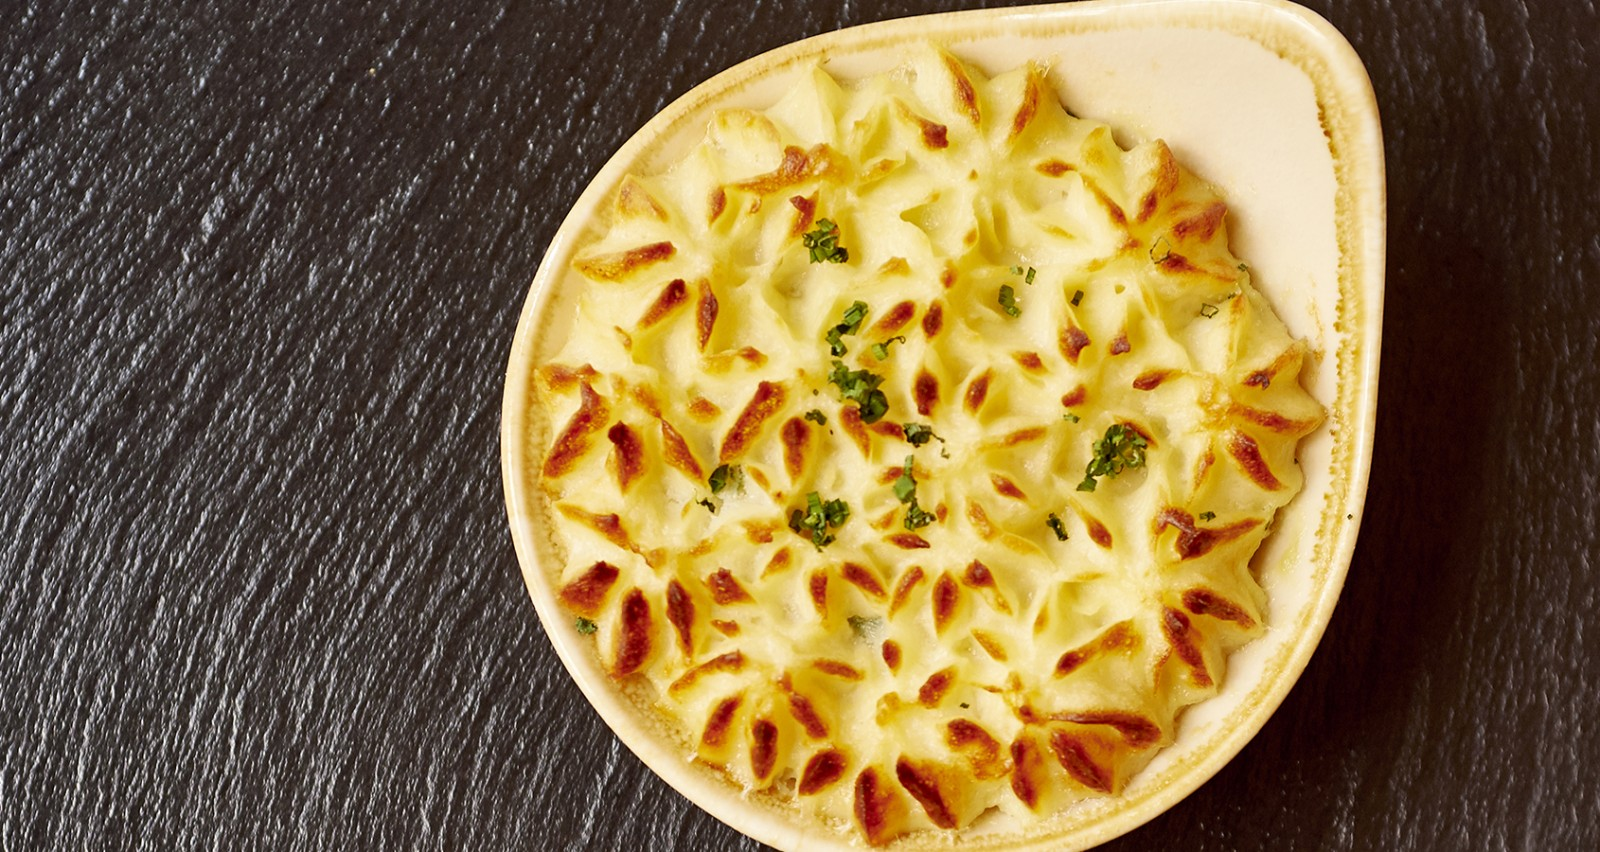 Fish pie recipe for National Fishing Month